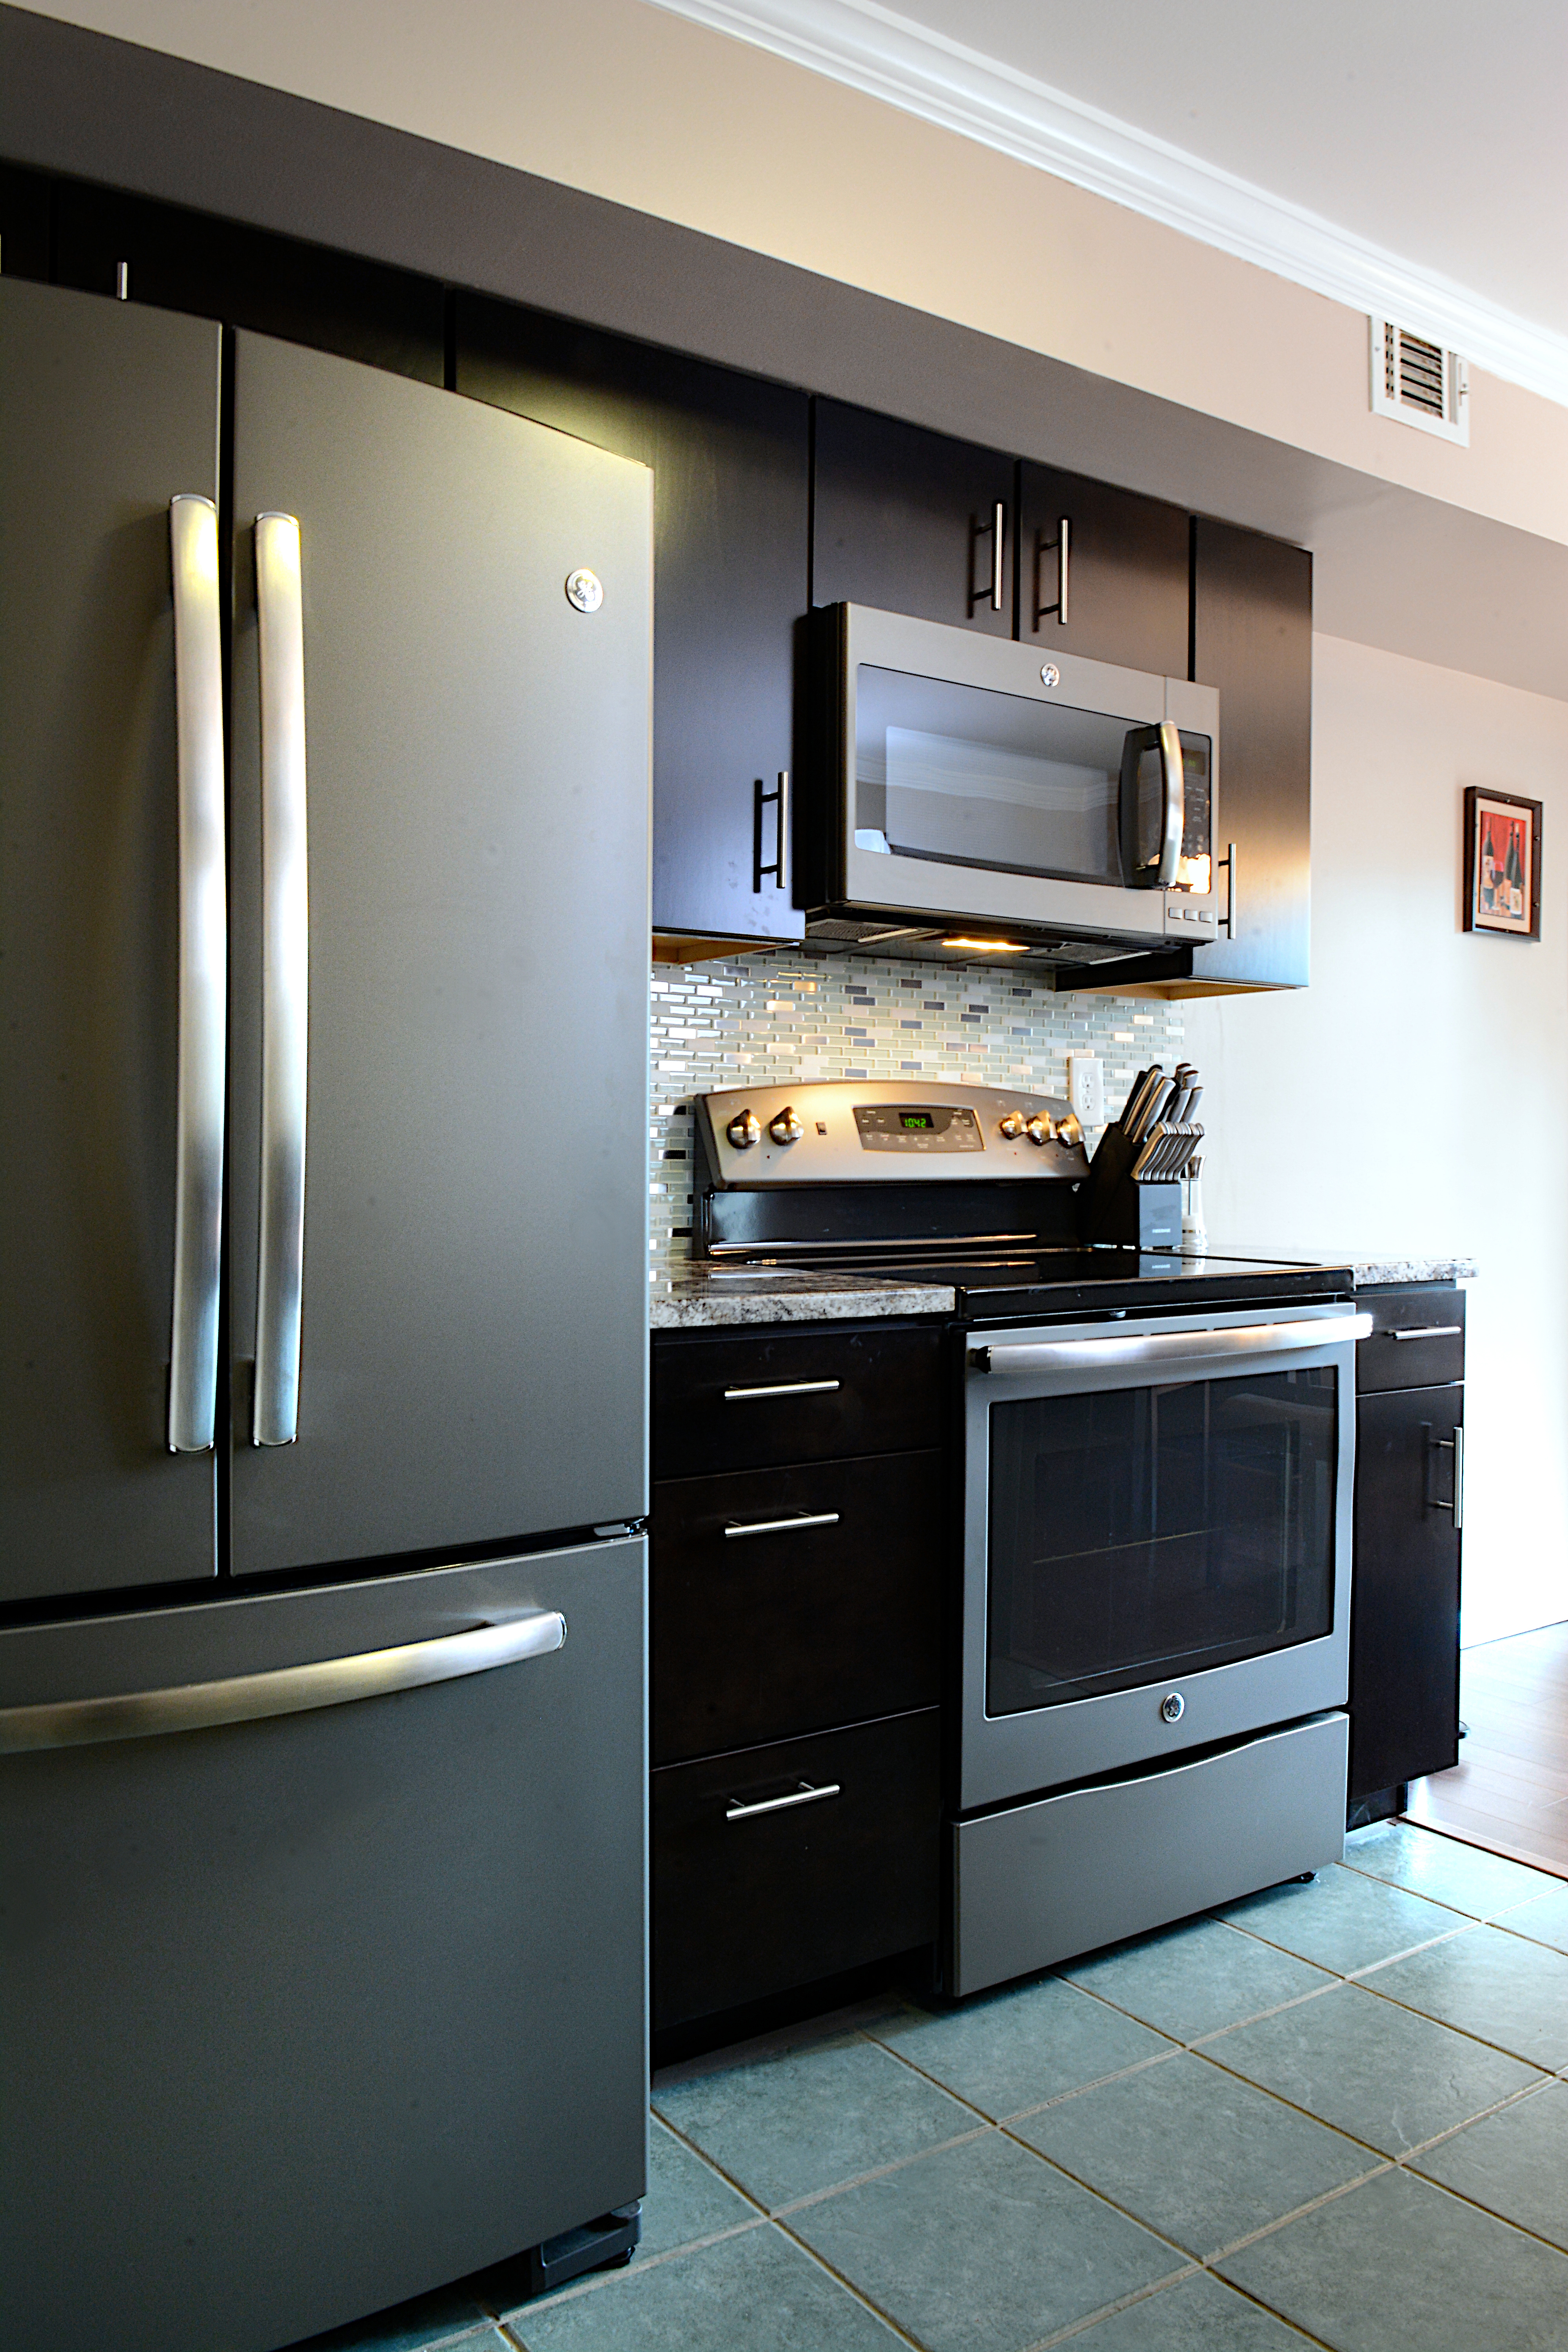 ge kitchen appliances titanium knives consumers go gray in a stylish waywith slate kitchens